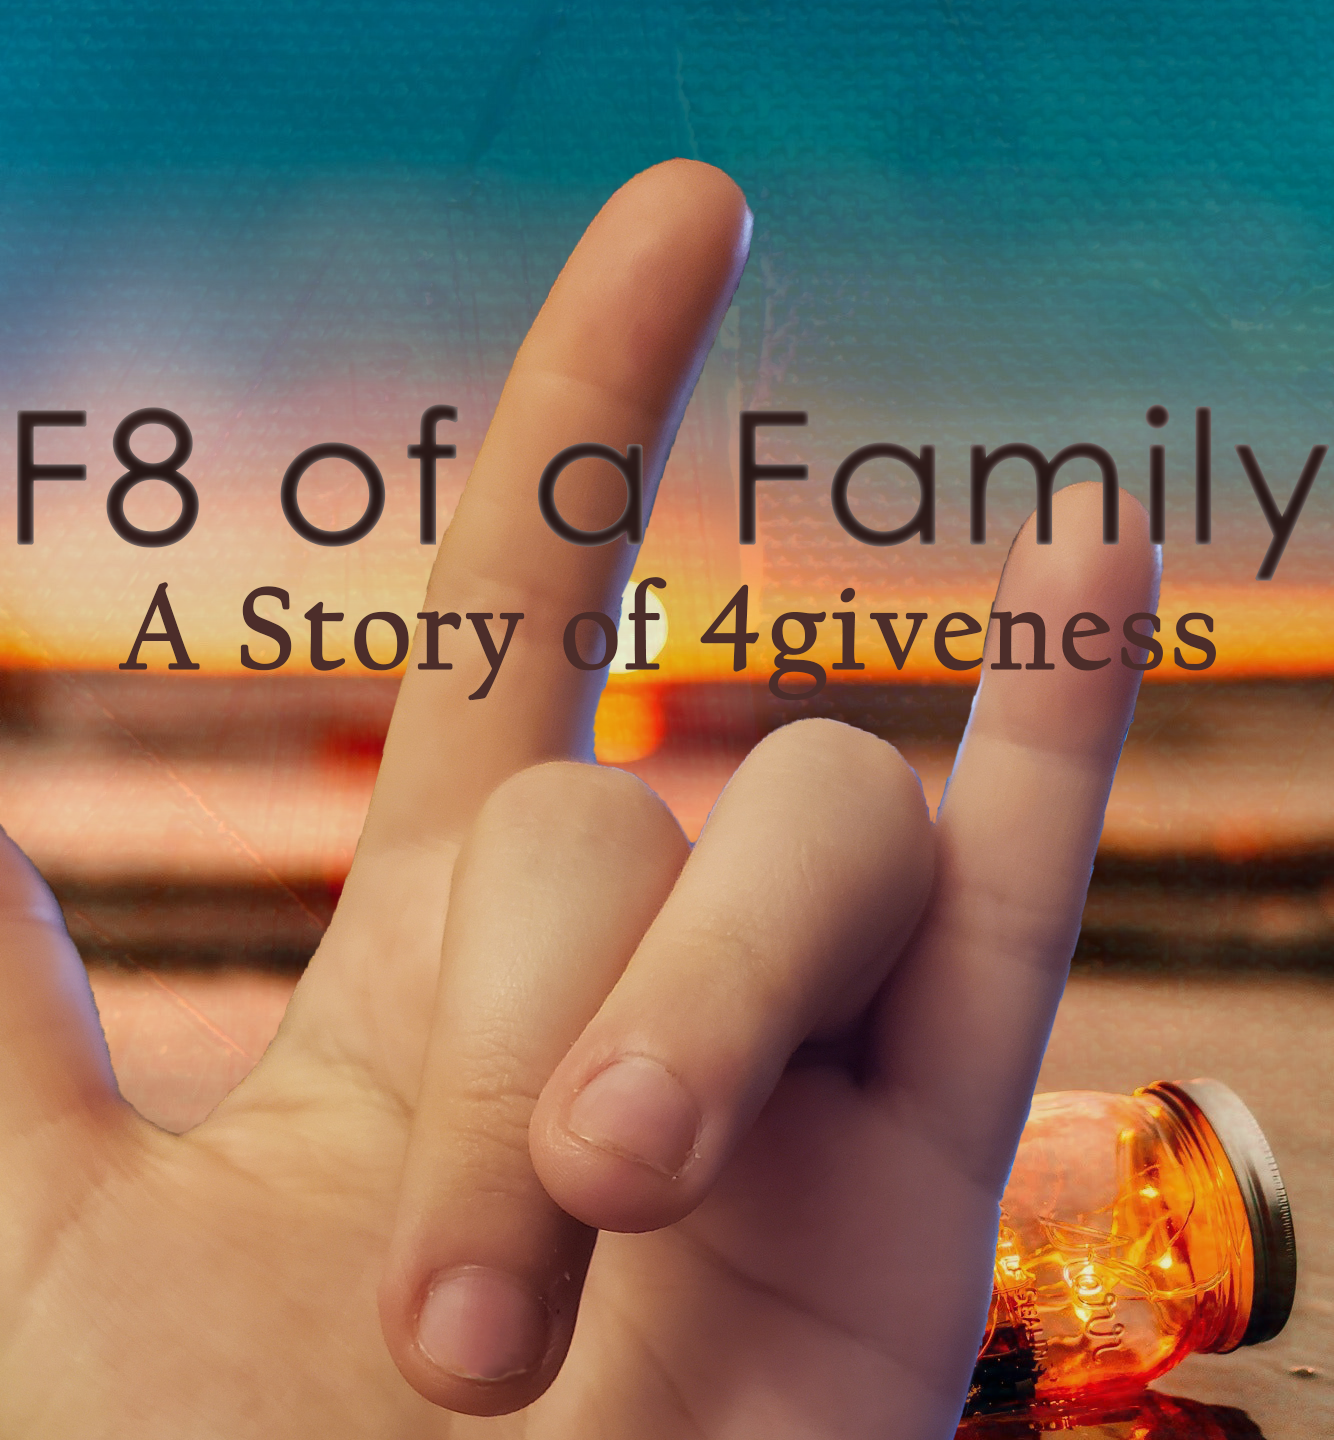 F8 of a Family Bookcover Concept Art